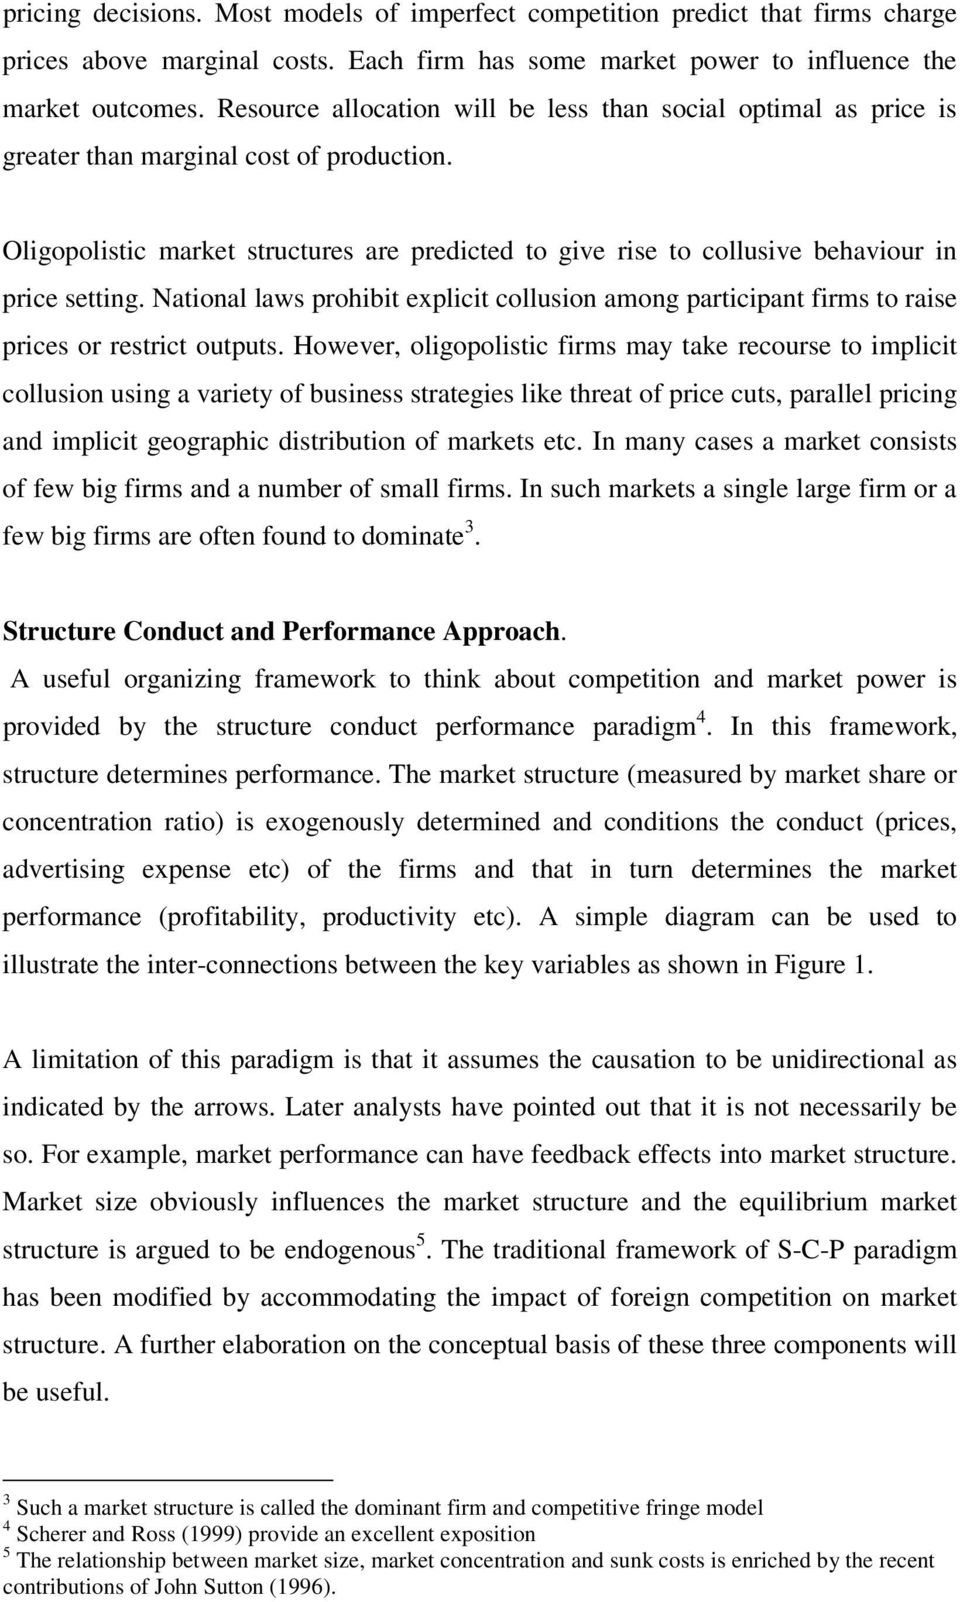 Oligopolistic market structures are predicted to give rise to collusive behaviour in price setting.